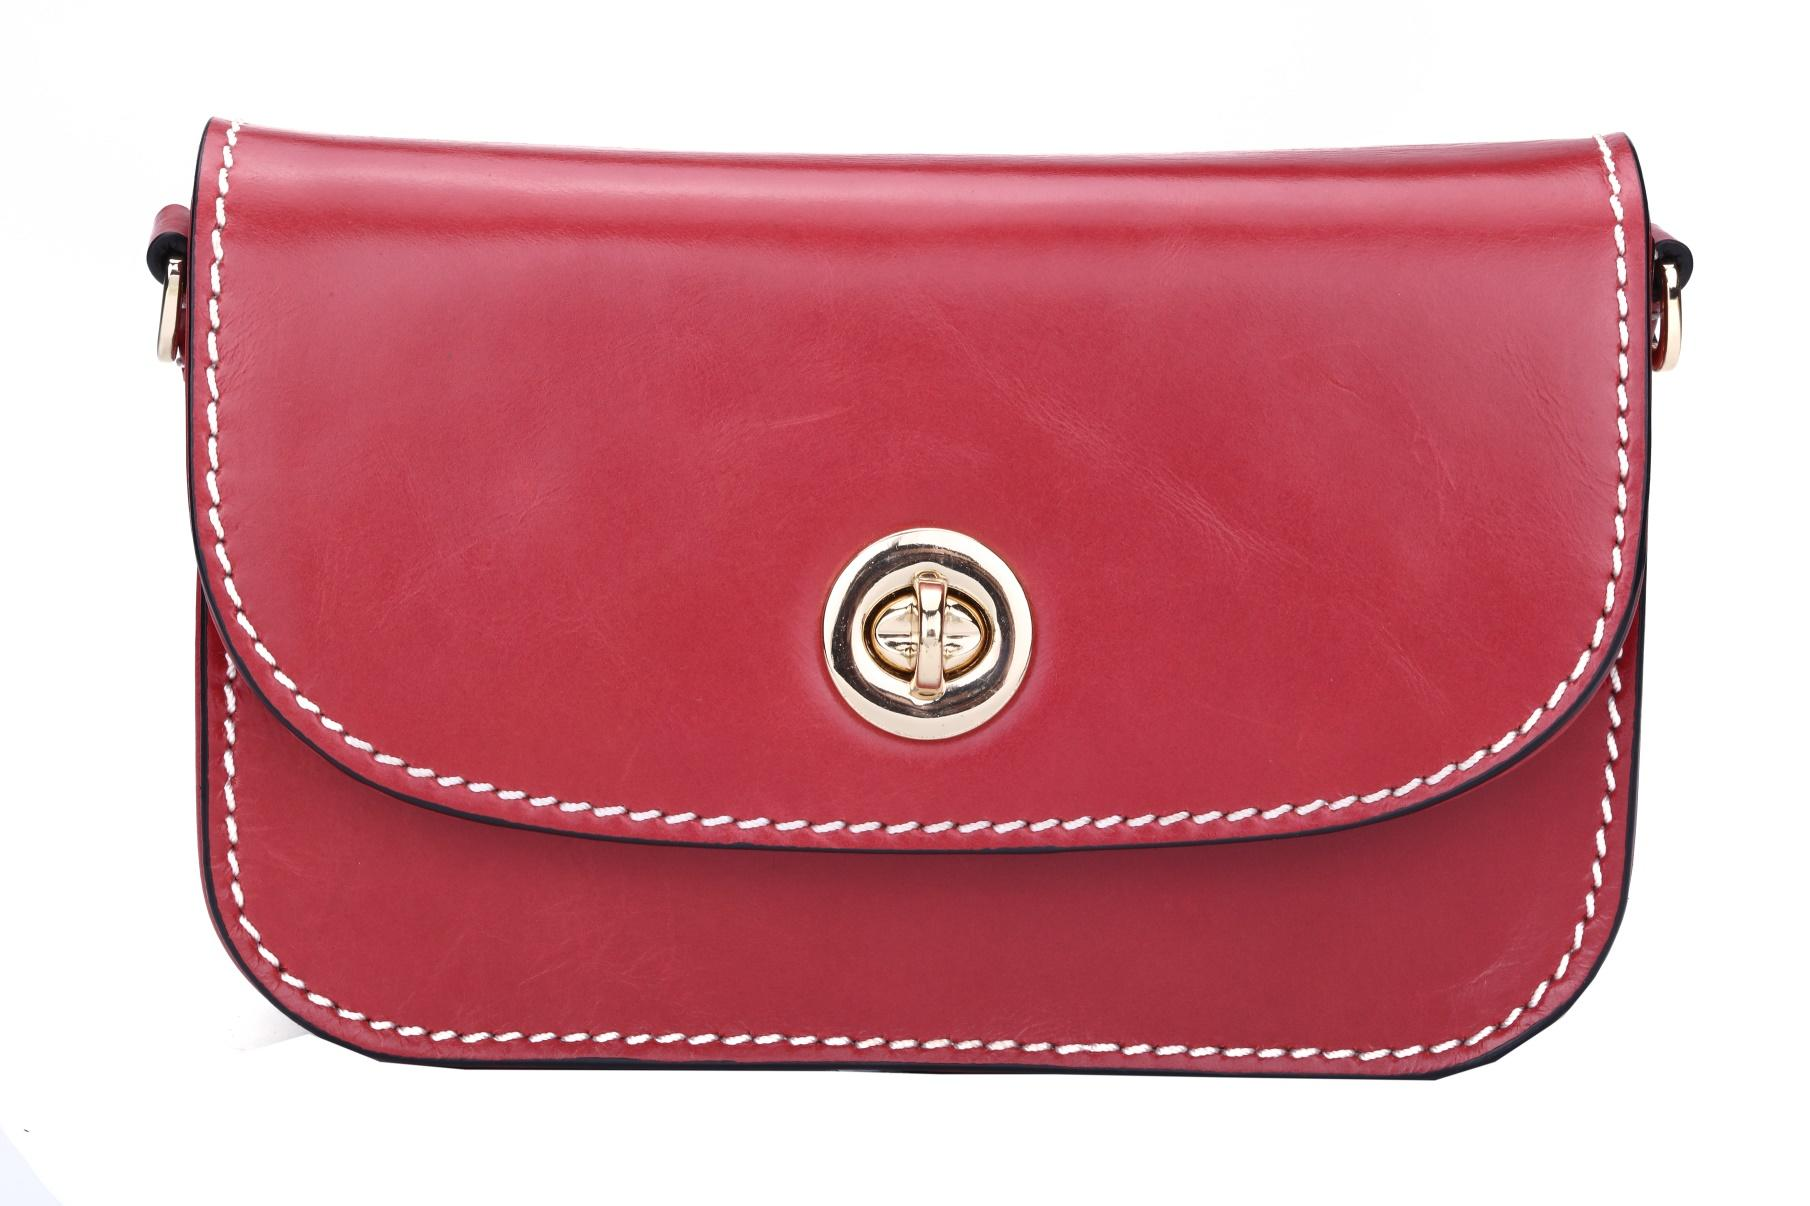 Evening Clutch Bags small genuine leather with metal lock